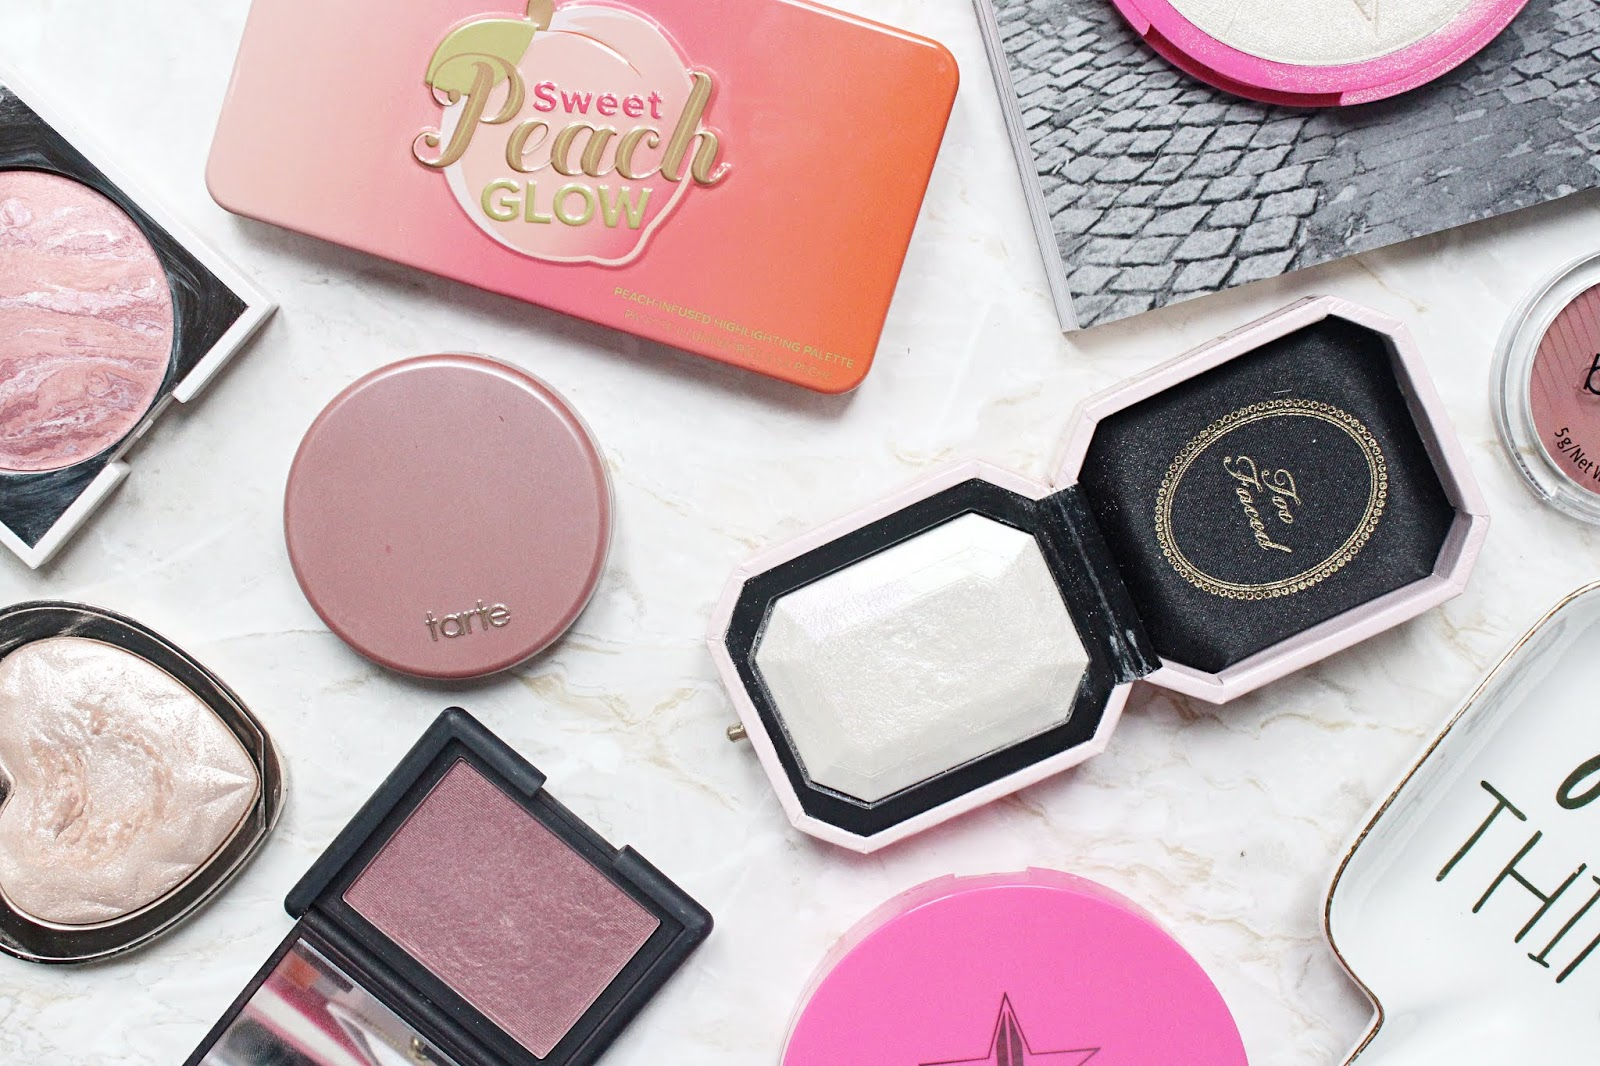 My Go-To Blushes and Highlighters